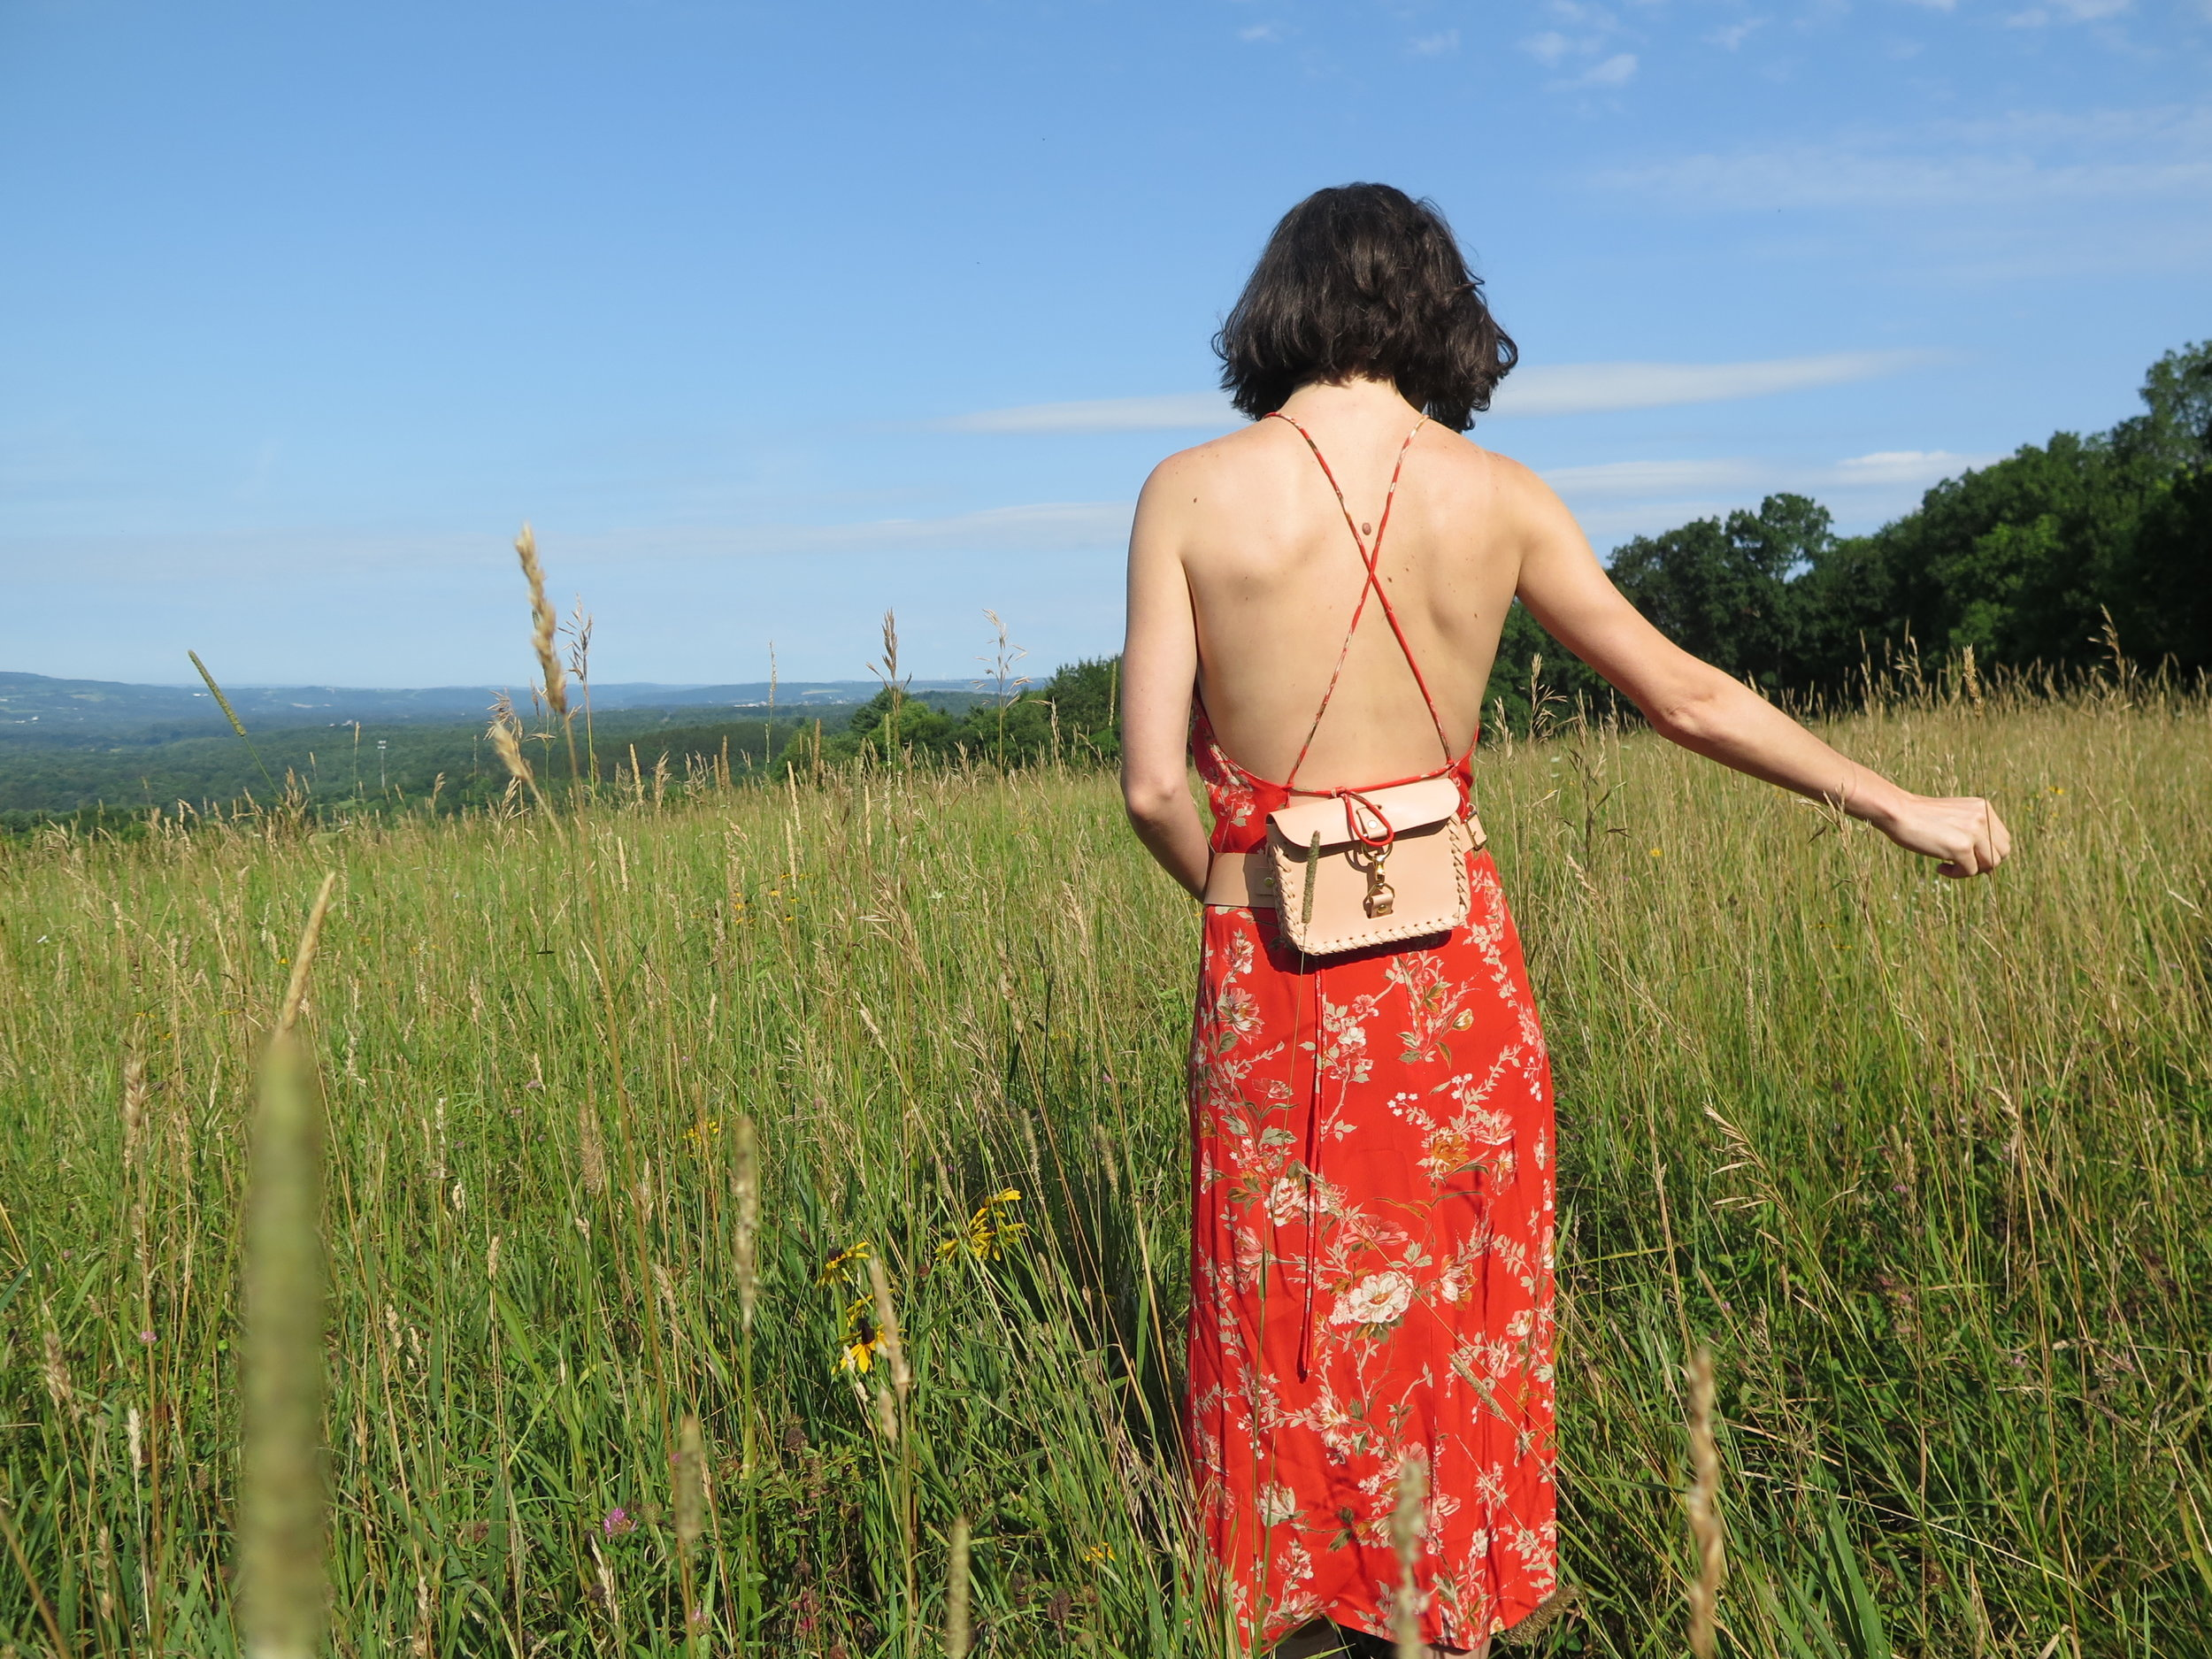 Leather belt bag by mary savel in nude in a country field.JPG